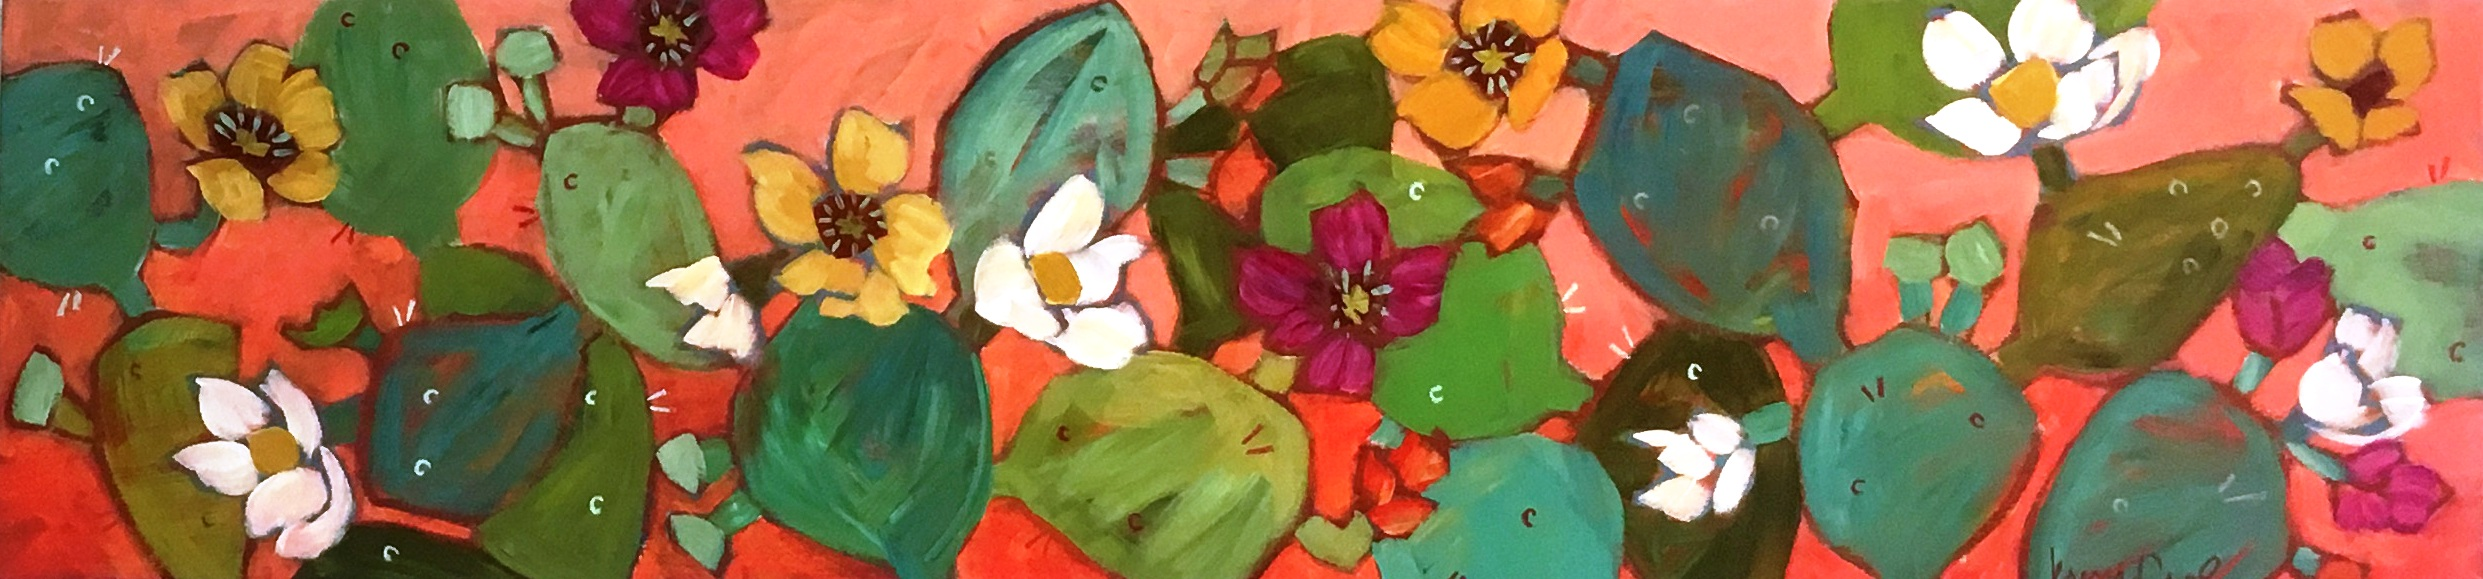 Coral Prickly Pear